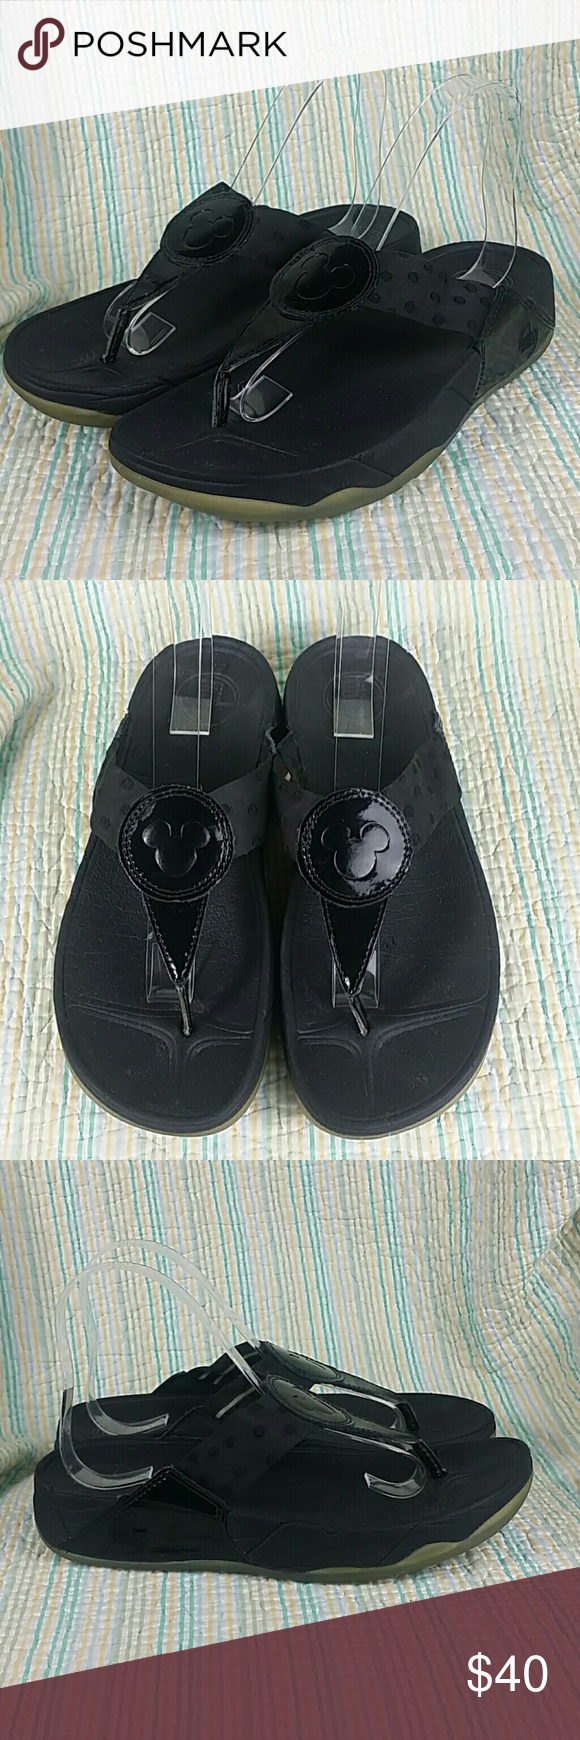 0d5e63f276d Fitflop Disney Toner Sandals Black Mickey Mouse 8 Fitflop Disney Toner  Sandals Black Mickey Mouse Design On Patent 8 EUR 39 fitflop Shoes Sandals